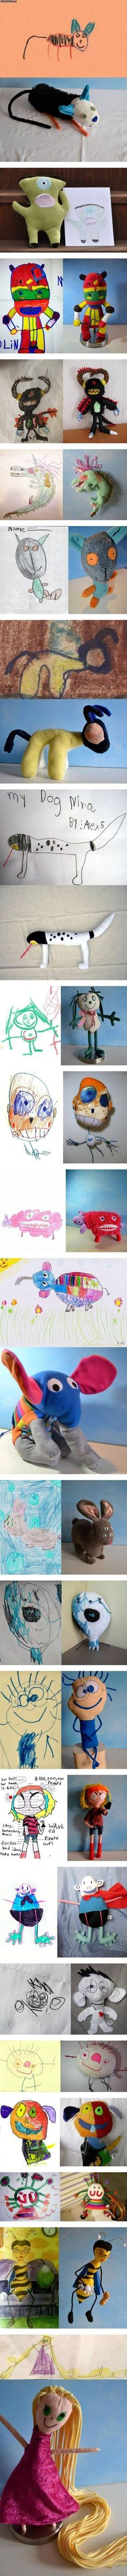 "kids' drawings brought to life  ~  You know it's adorable when it makes your husband say, ""Aww...that's so cute!"""